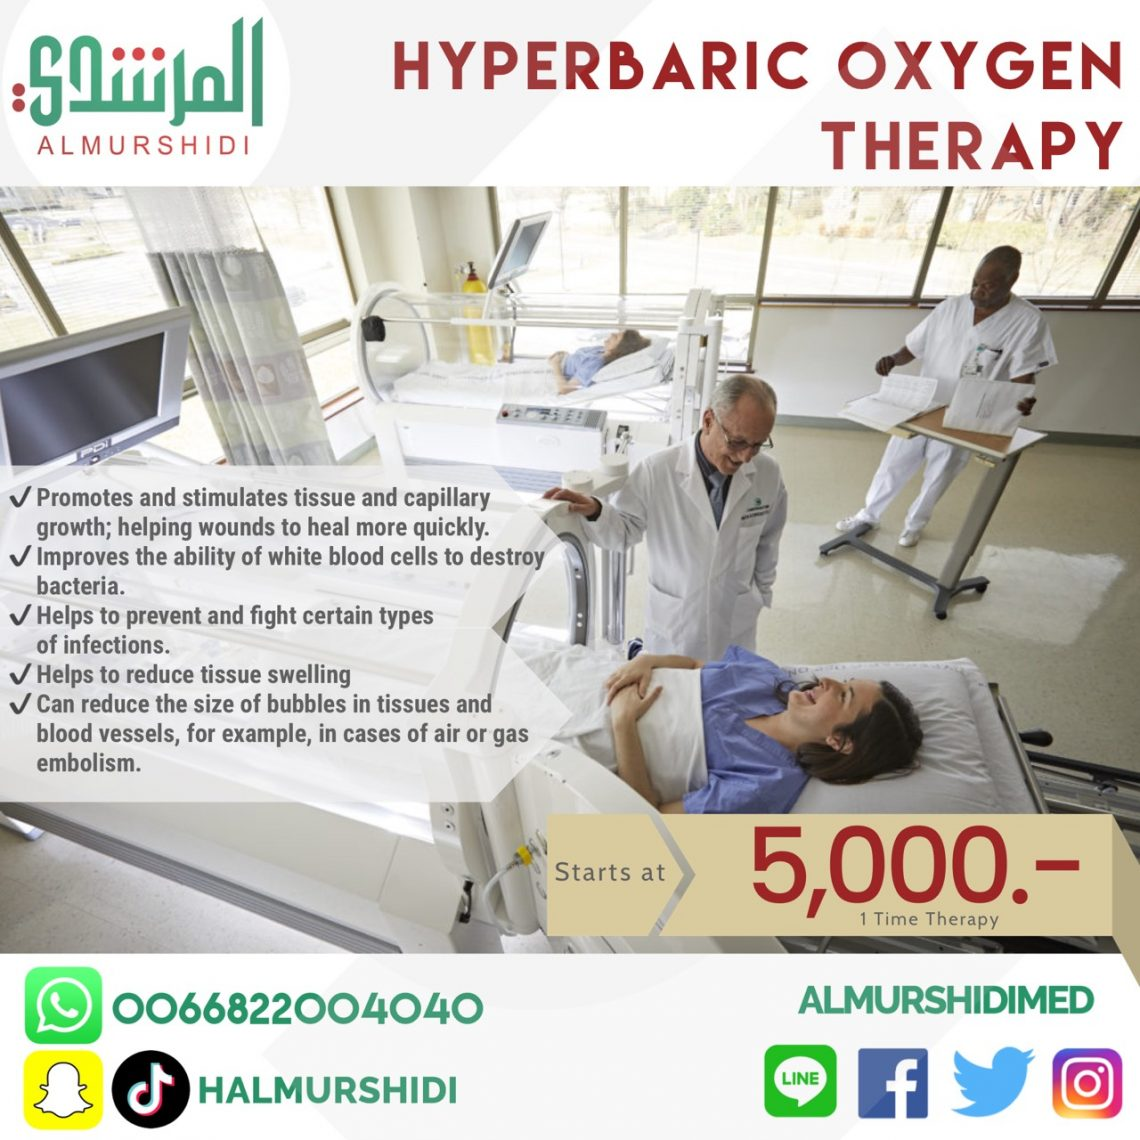 Best Hyperbaric Oxygen Therapy Prices in Thailand